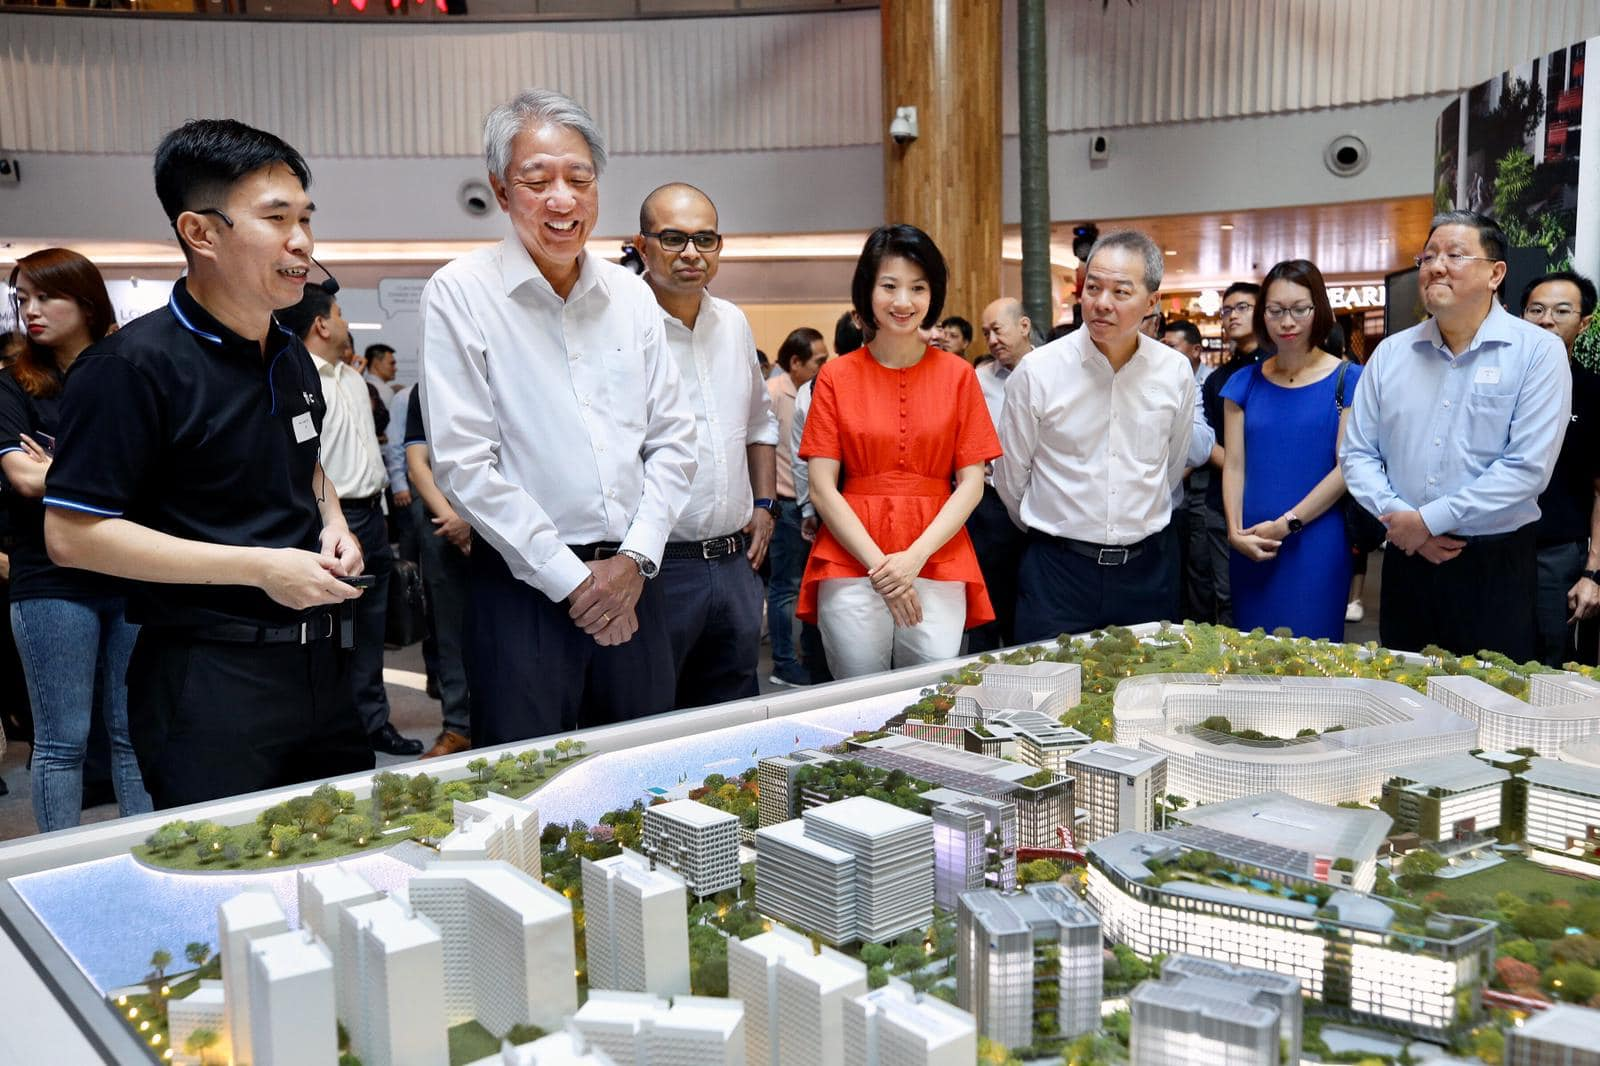 Senior Minister and Coordinating Minister for National Security Teo Chee Hean (second from left), with Senior Minister of State, Ministry of Transport & Ministry of Communications and Information, Janil Puthucheary; and Senior Parliamentary Secretary, Ministry of Home Affairs & Ministry of National Development, Sun Xueling, at the groundbreaking ceremony of the Punggol Digital District. Photo courtesy: Teo Chee Hean FB